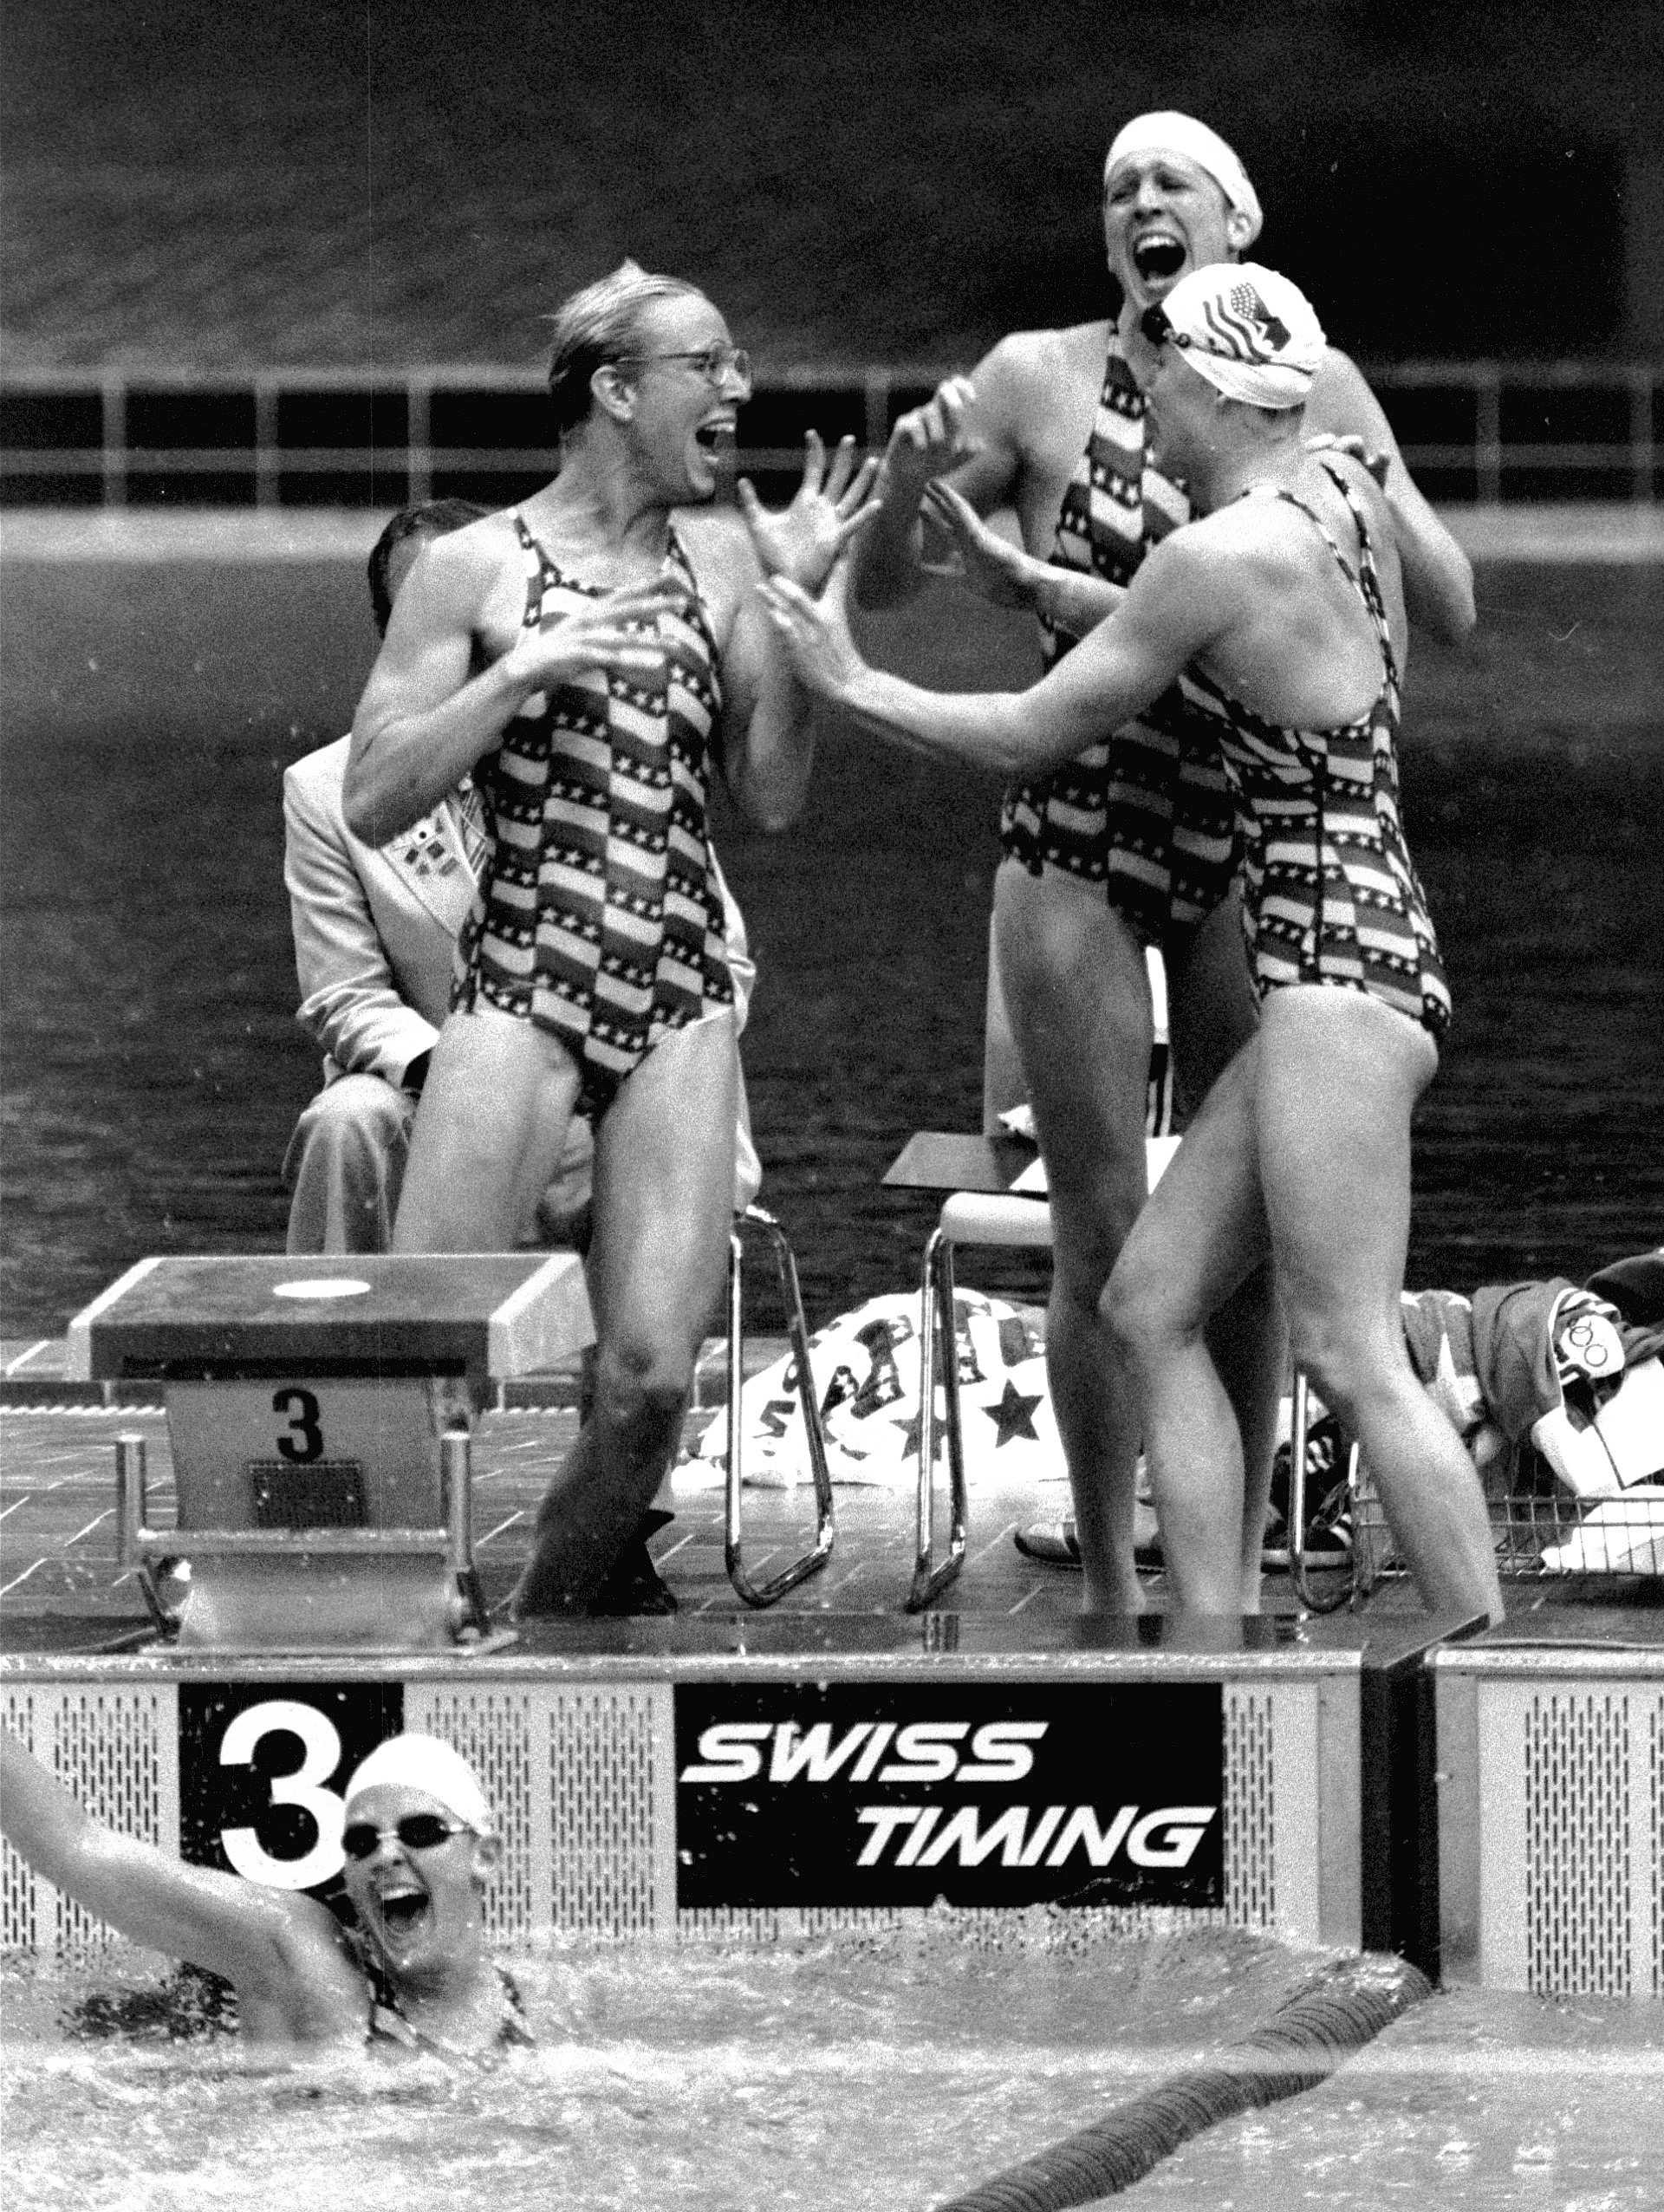 FILE - In this July 26, 1976, file photo, the United States women's  relay team, from top left, Wendy Boglioli, Kim Peyton, and Jill Sterkel celebrate after Shirley Babashoff, bottome left, finished the final leg of the 4x100 meter freestyle relay event t